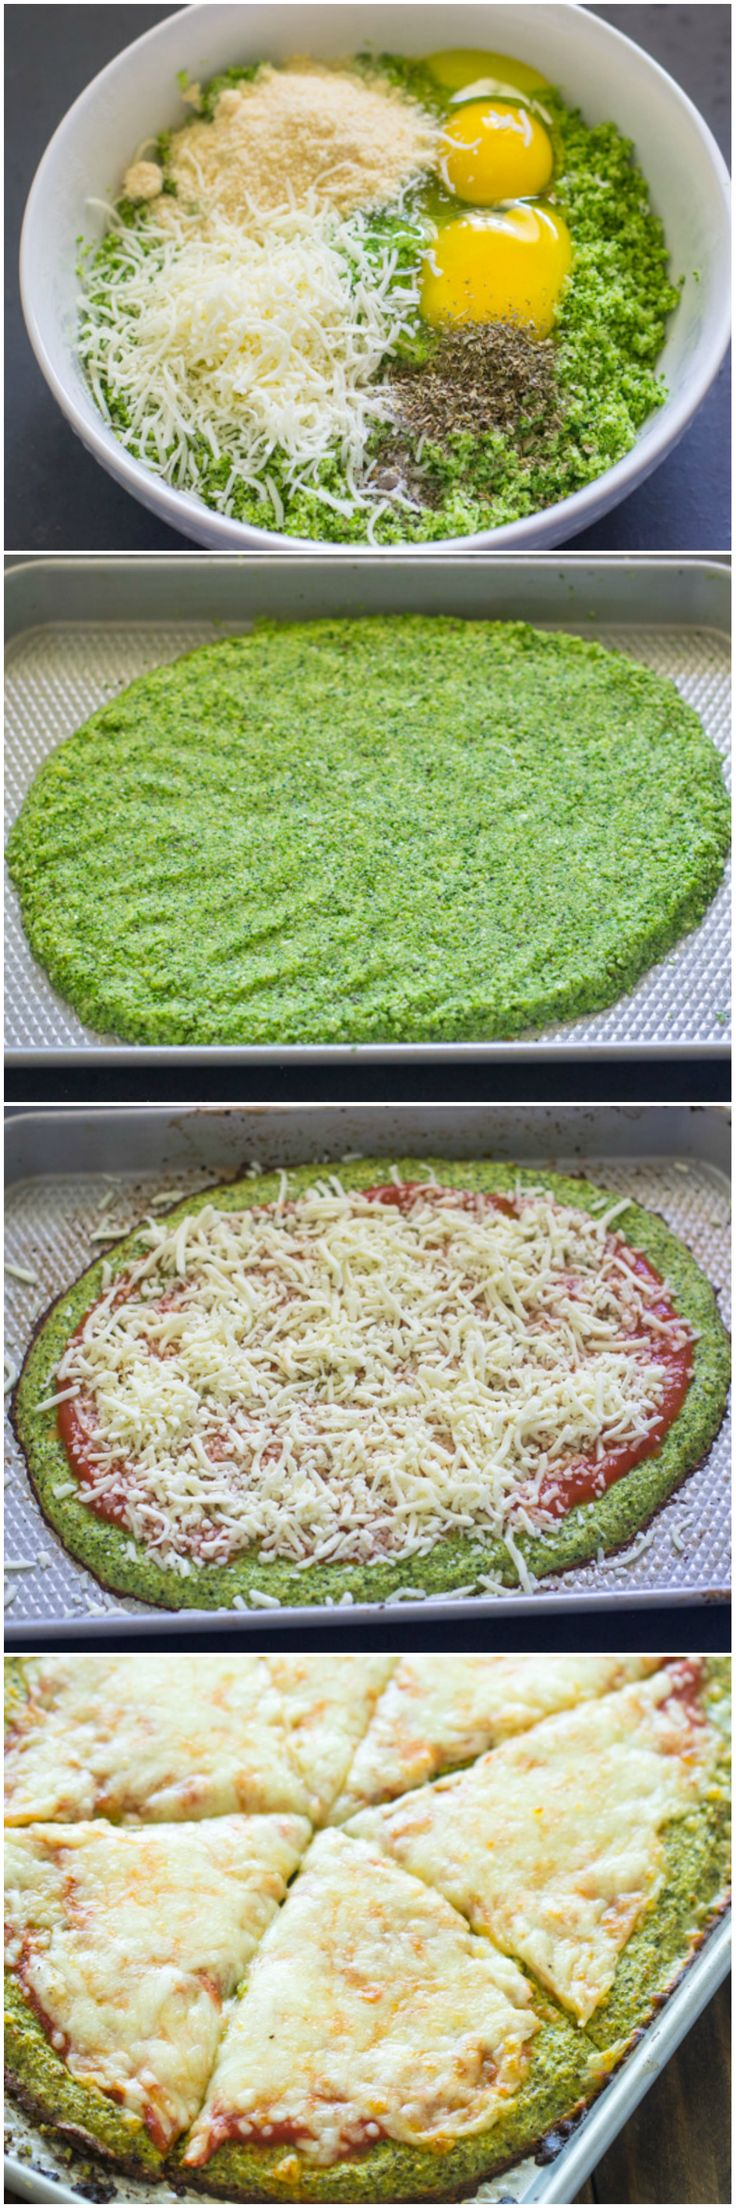 Broccoli pizza crust.